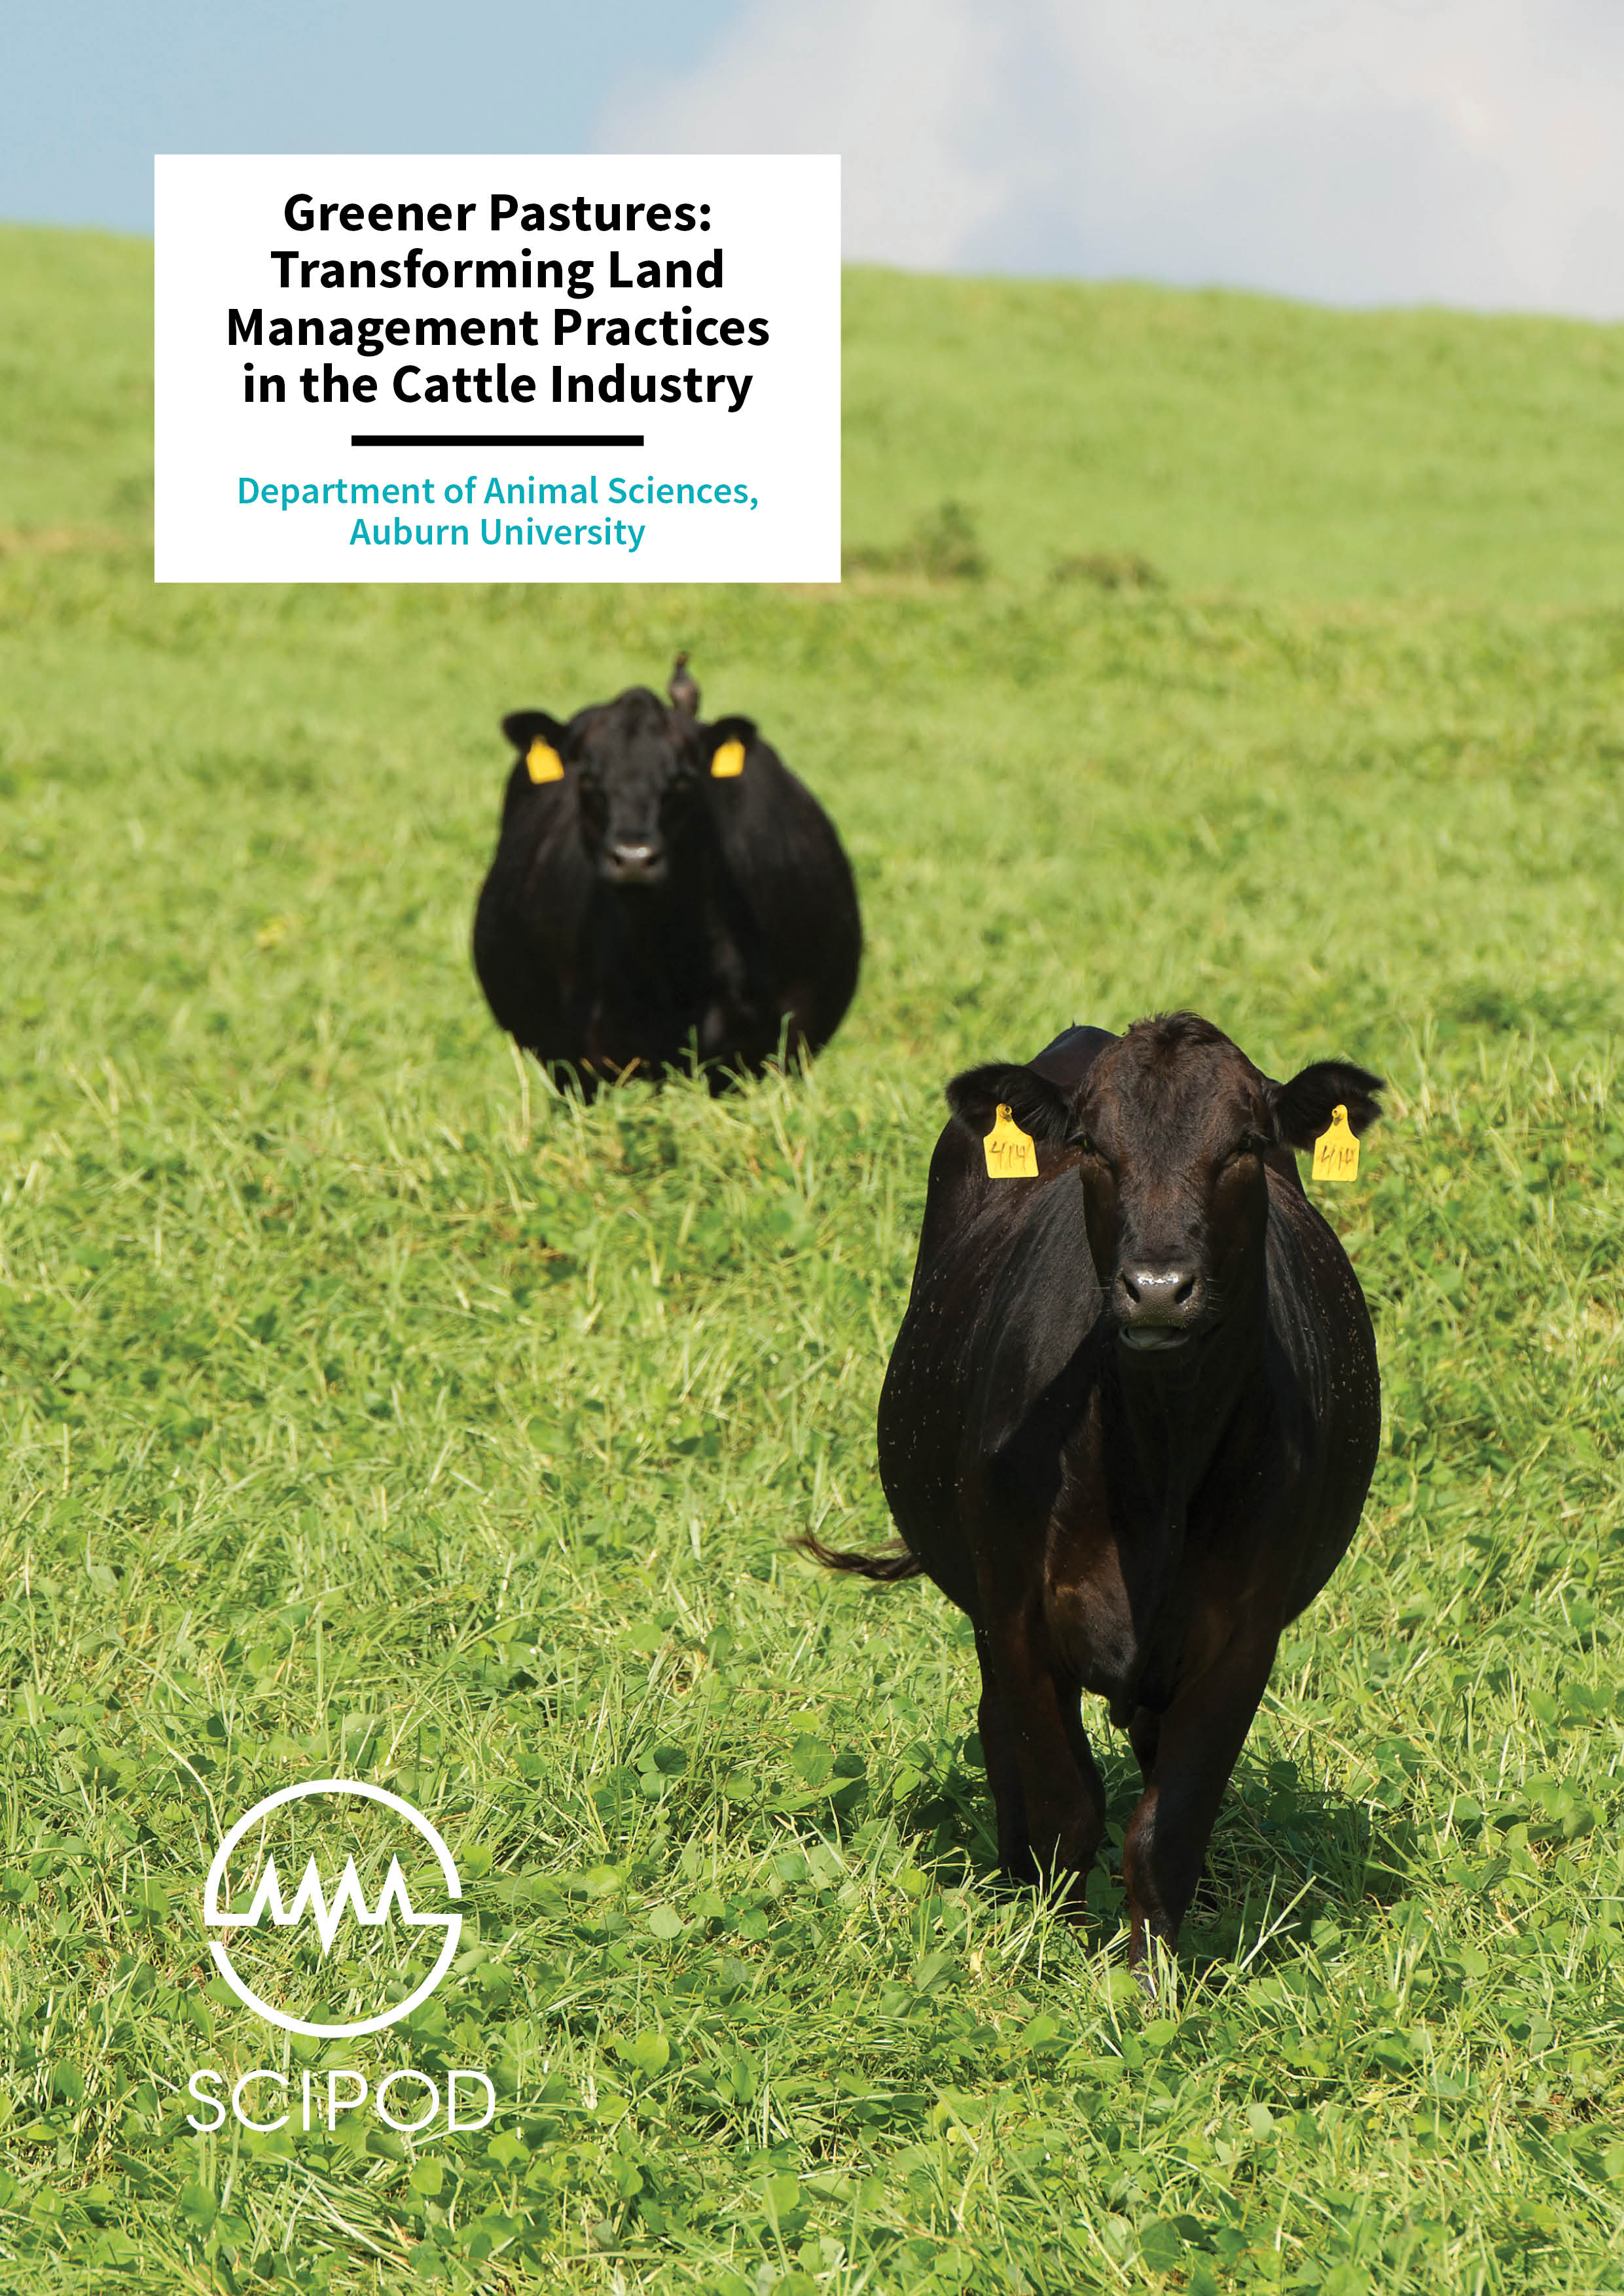 Greener Pastures, Transforming Land Management Practices in the Cattle Industry – Department of Animal Sciences, Auburn University